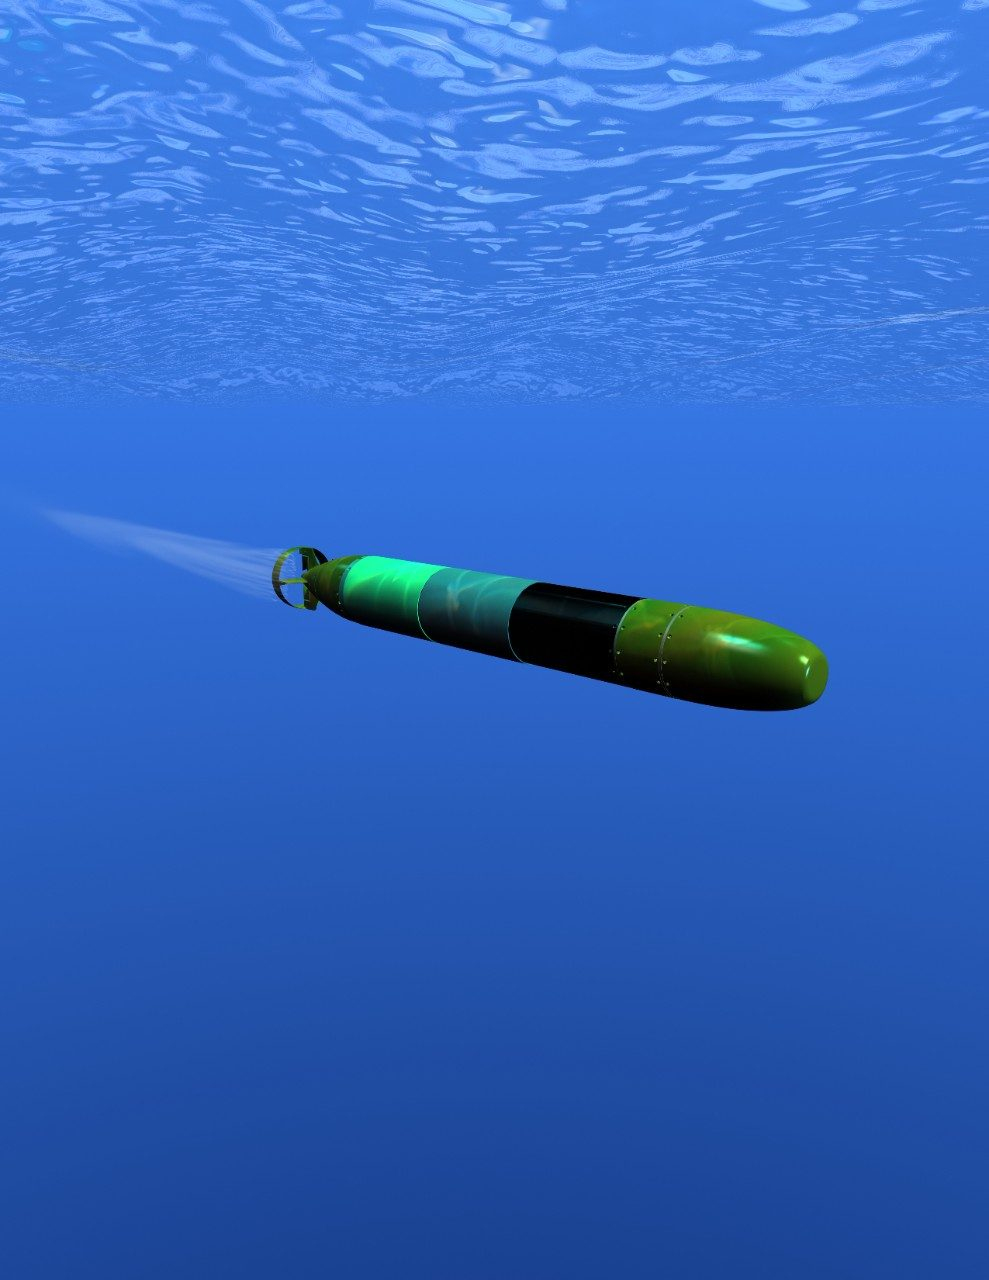 A-Size Autonomous Underwater Vehicles